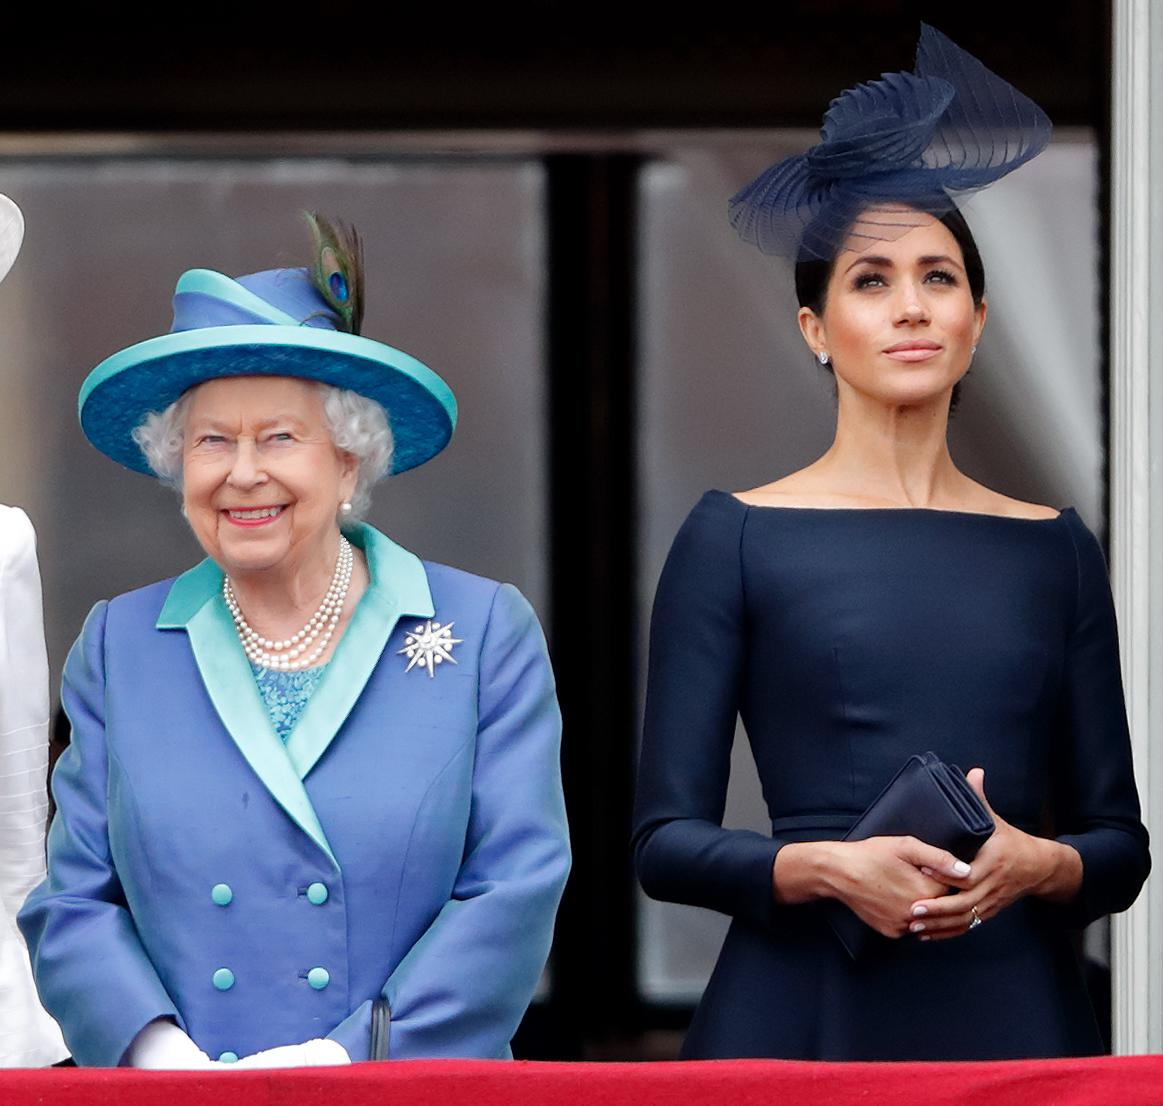 LONDON, UNITED KINGDOM - JULY 10: (EMBARGOED FOR PUBLICATION IN UK NEWSPAPERS UNTIL 24 HOURS AFTER CREATE DATE AND TIME) Queen Elizabeth II and Meghan, Duchess of Sussex watch a flypast to mark the centenary of the Royal Air Force from the balcony of Buckingham Palace on July 10, 2018 in London, England. The 100th birthday of the RAF, which was founded on on 1 April 1918, was marked with a centenary parade with the presentation of a new Queen's Colour and flypast of 100 aircraft over Buckingham Palace. (Photo by Max Mumby/Indigo/Getty Images)